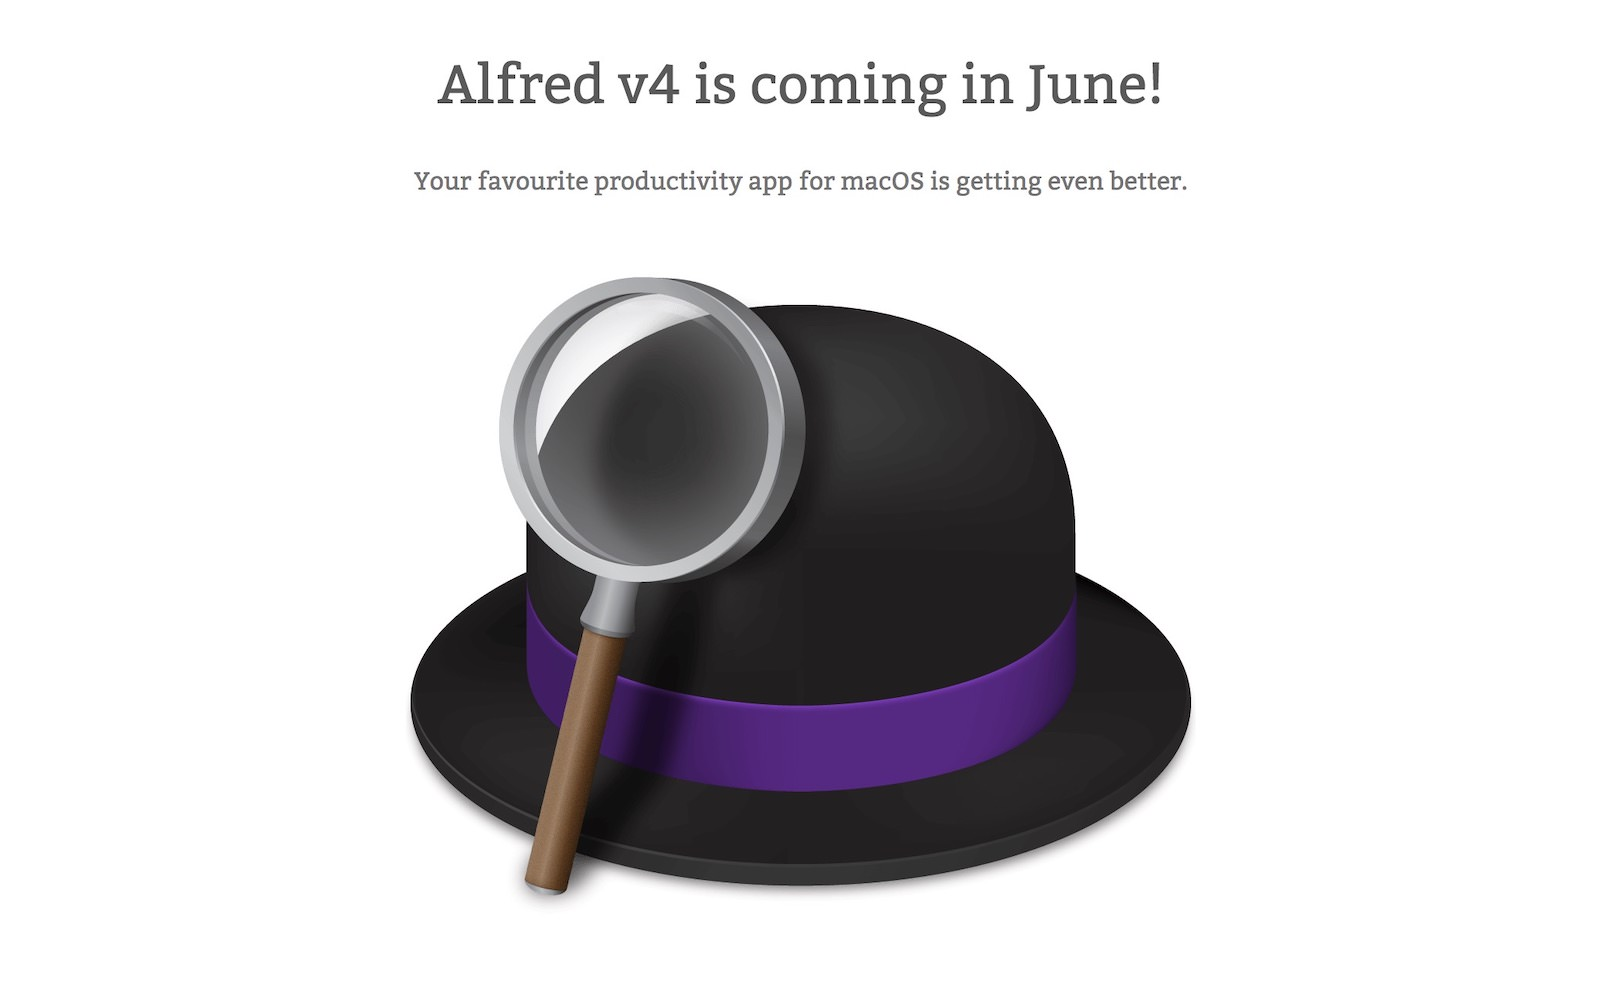 Alfred 4 coming in june